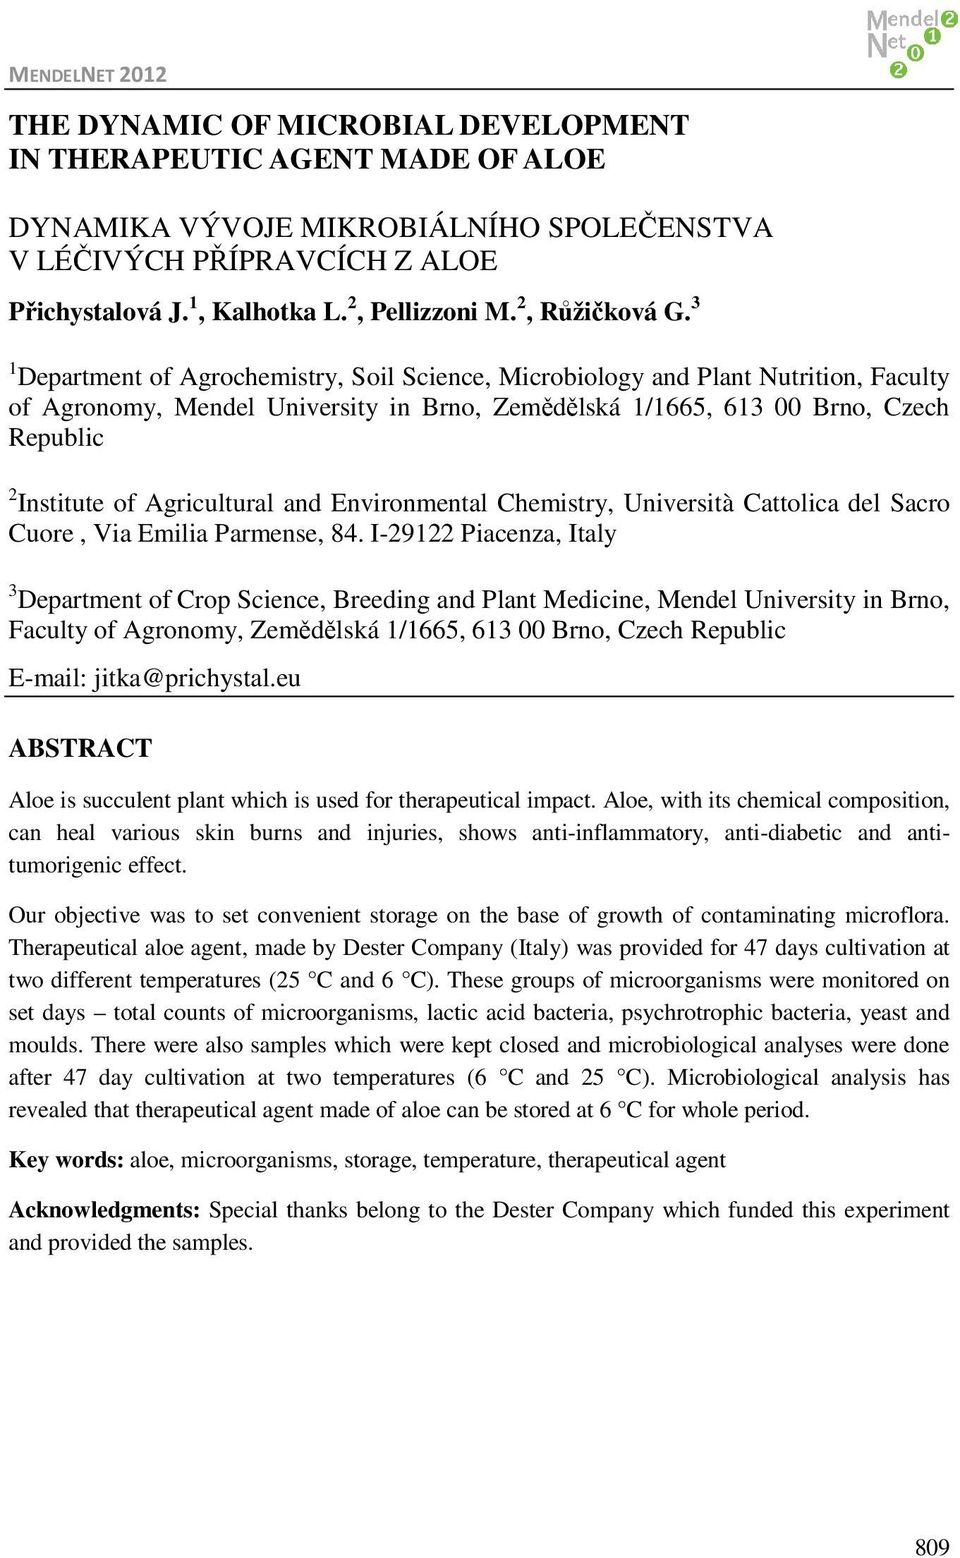 3 1 Department of Agrochemistry, Soil Science, Microbiology and Plant Nutrition, Faculty of Agronomy, Mendel University in Brno, Zemědělská 1/1665, 613 00 Brno, Czech Republic 2 Institute of